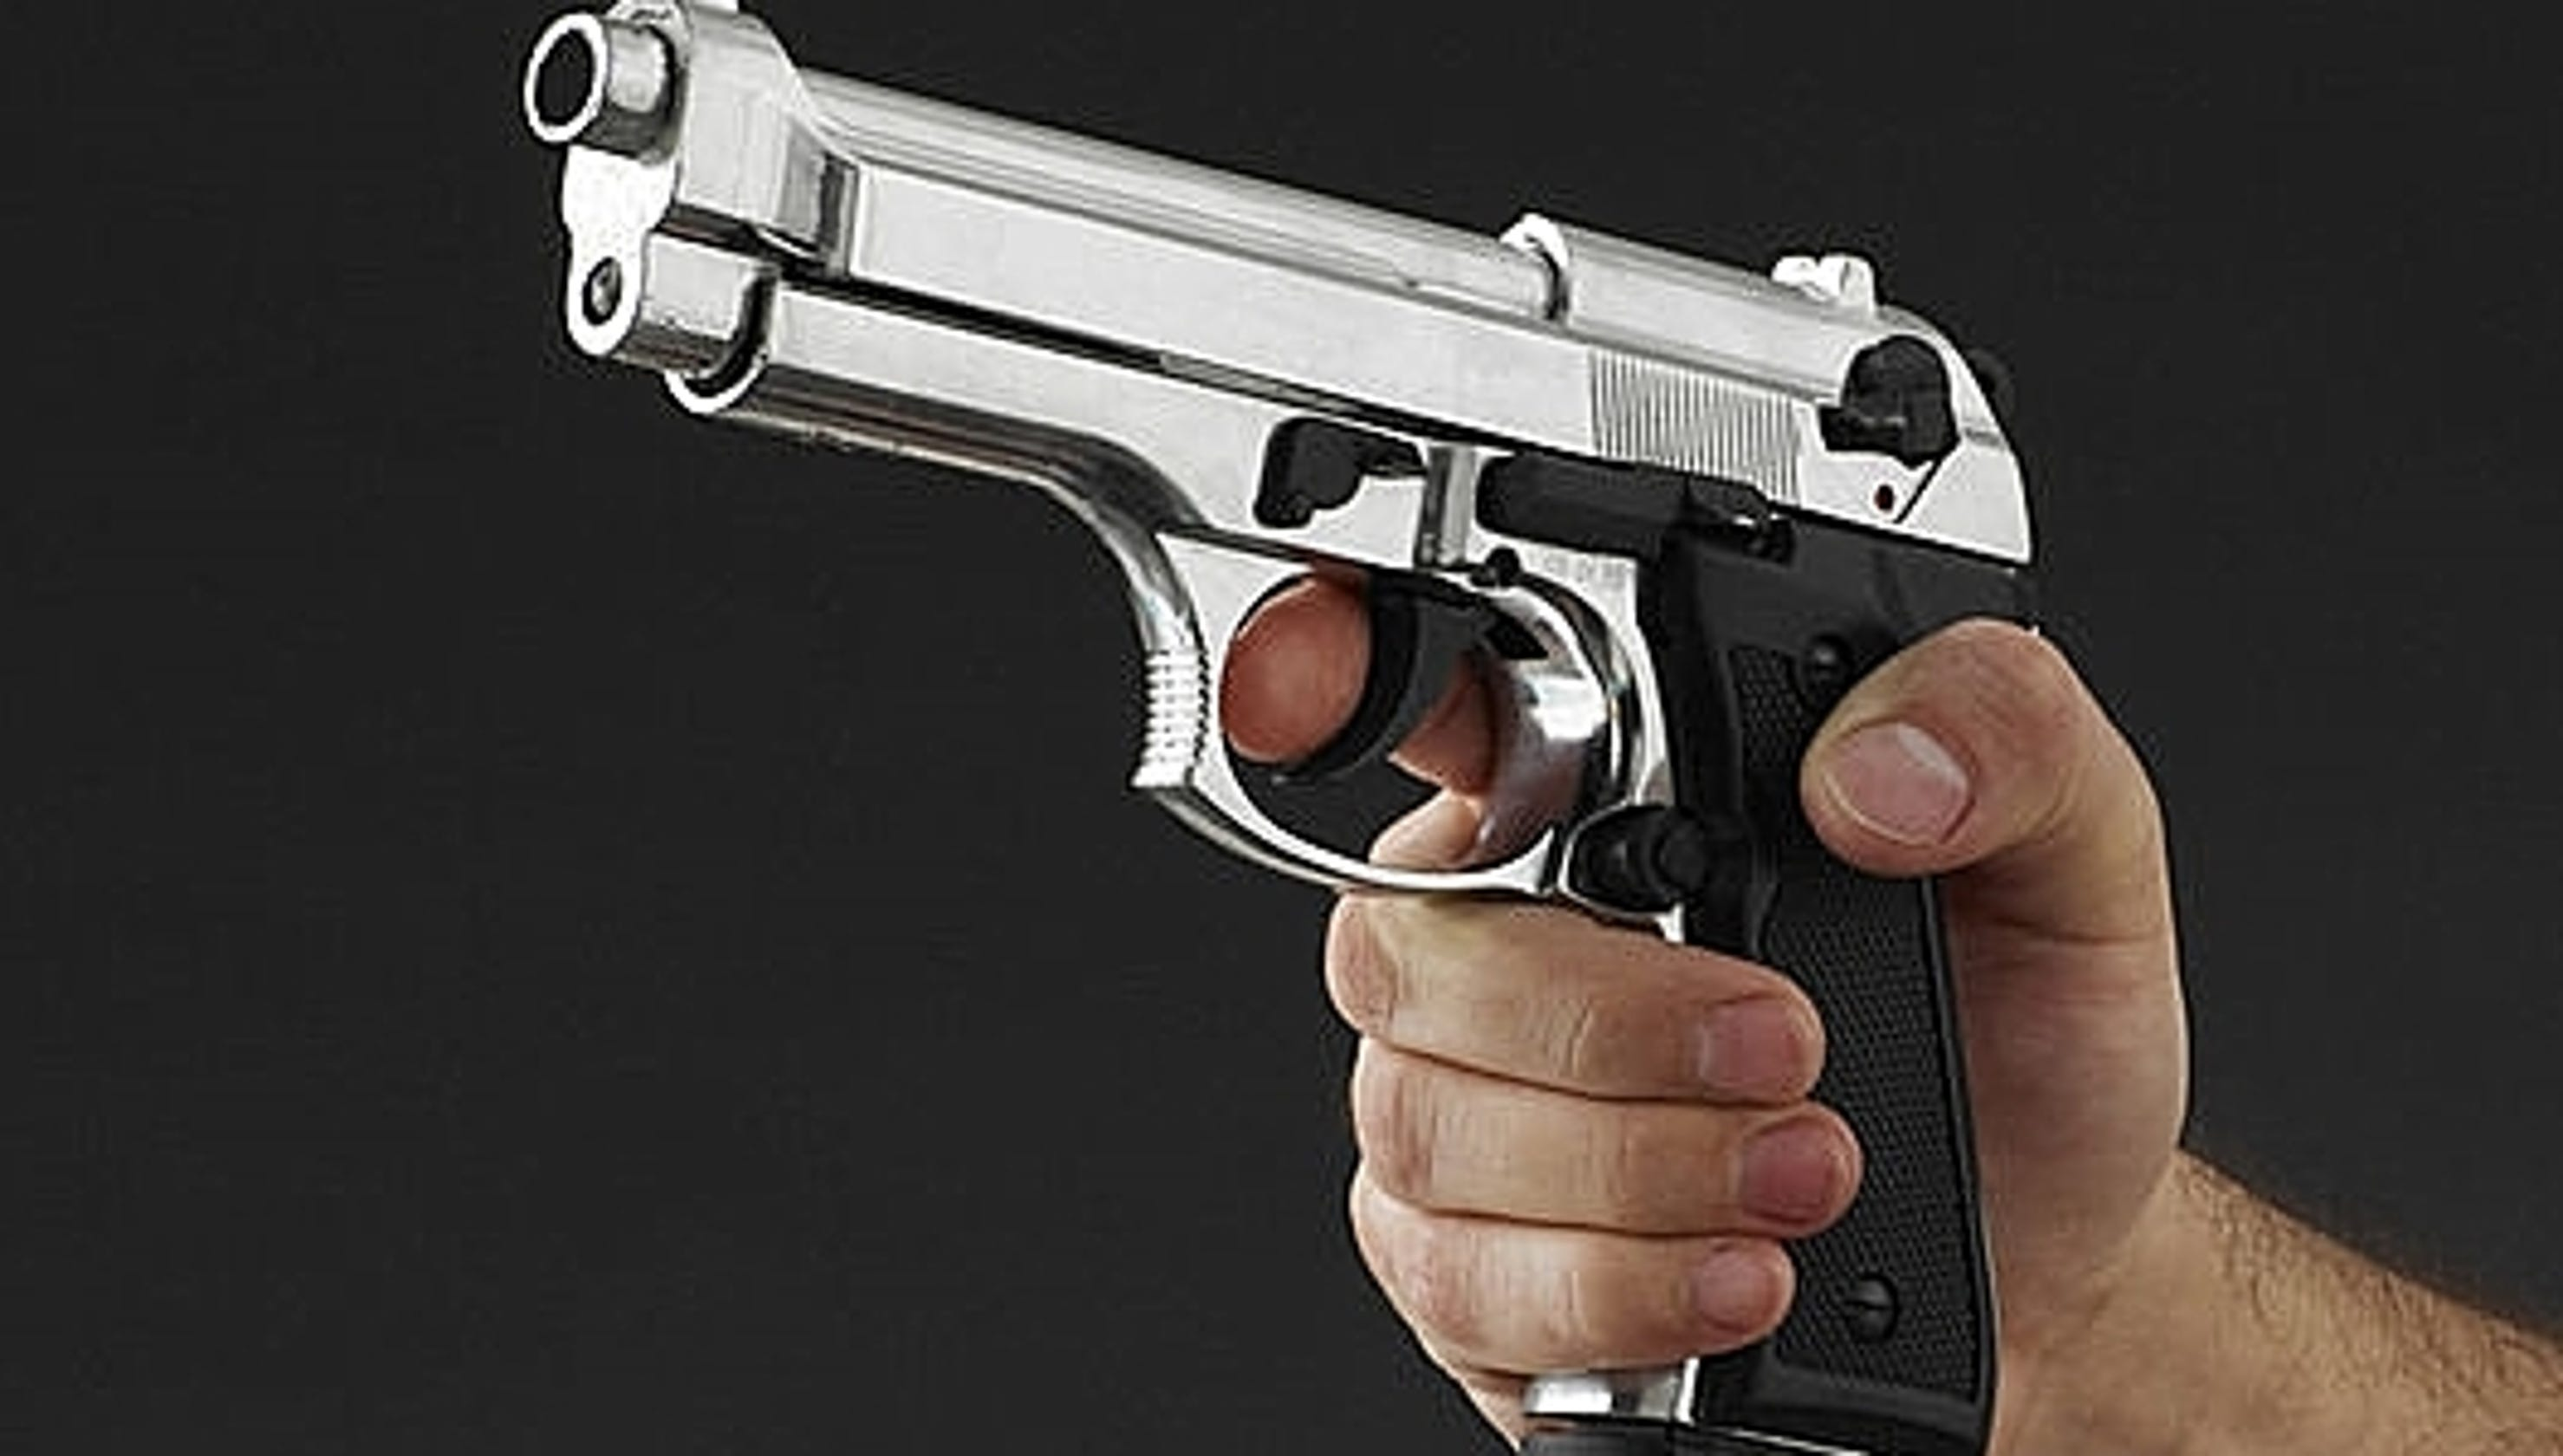 More Ohioans have concealed carry permits than ever before